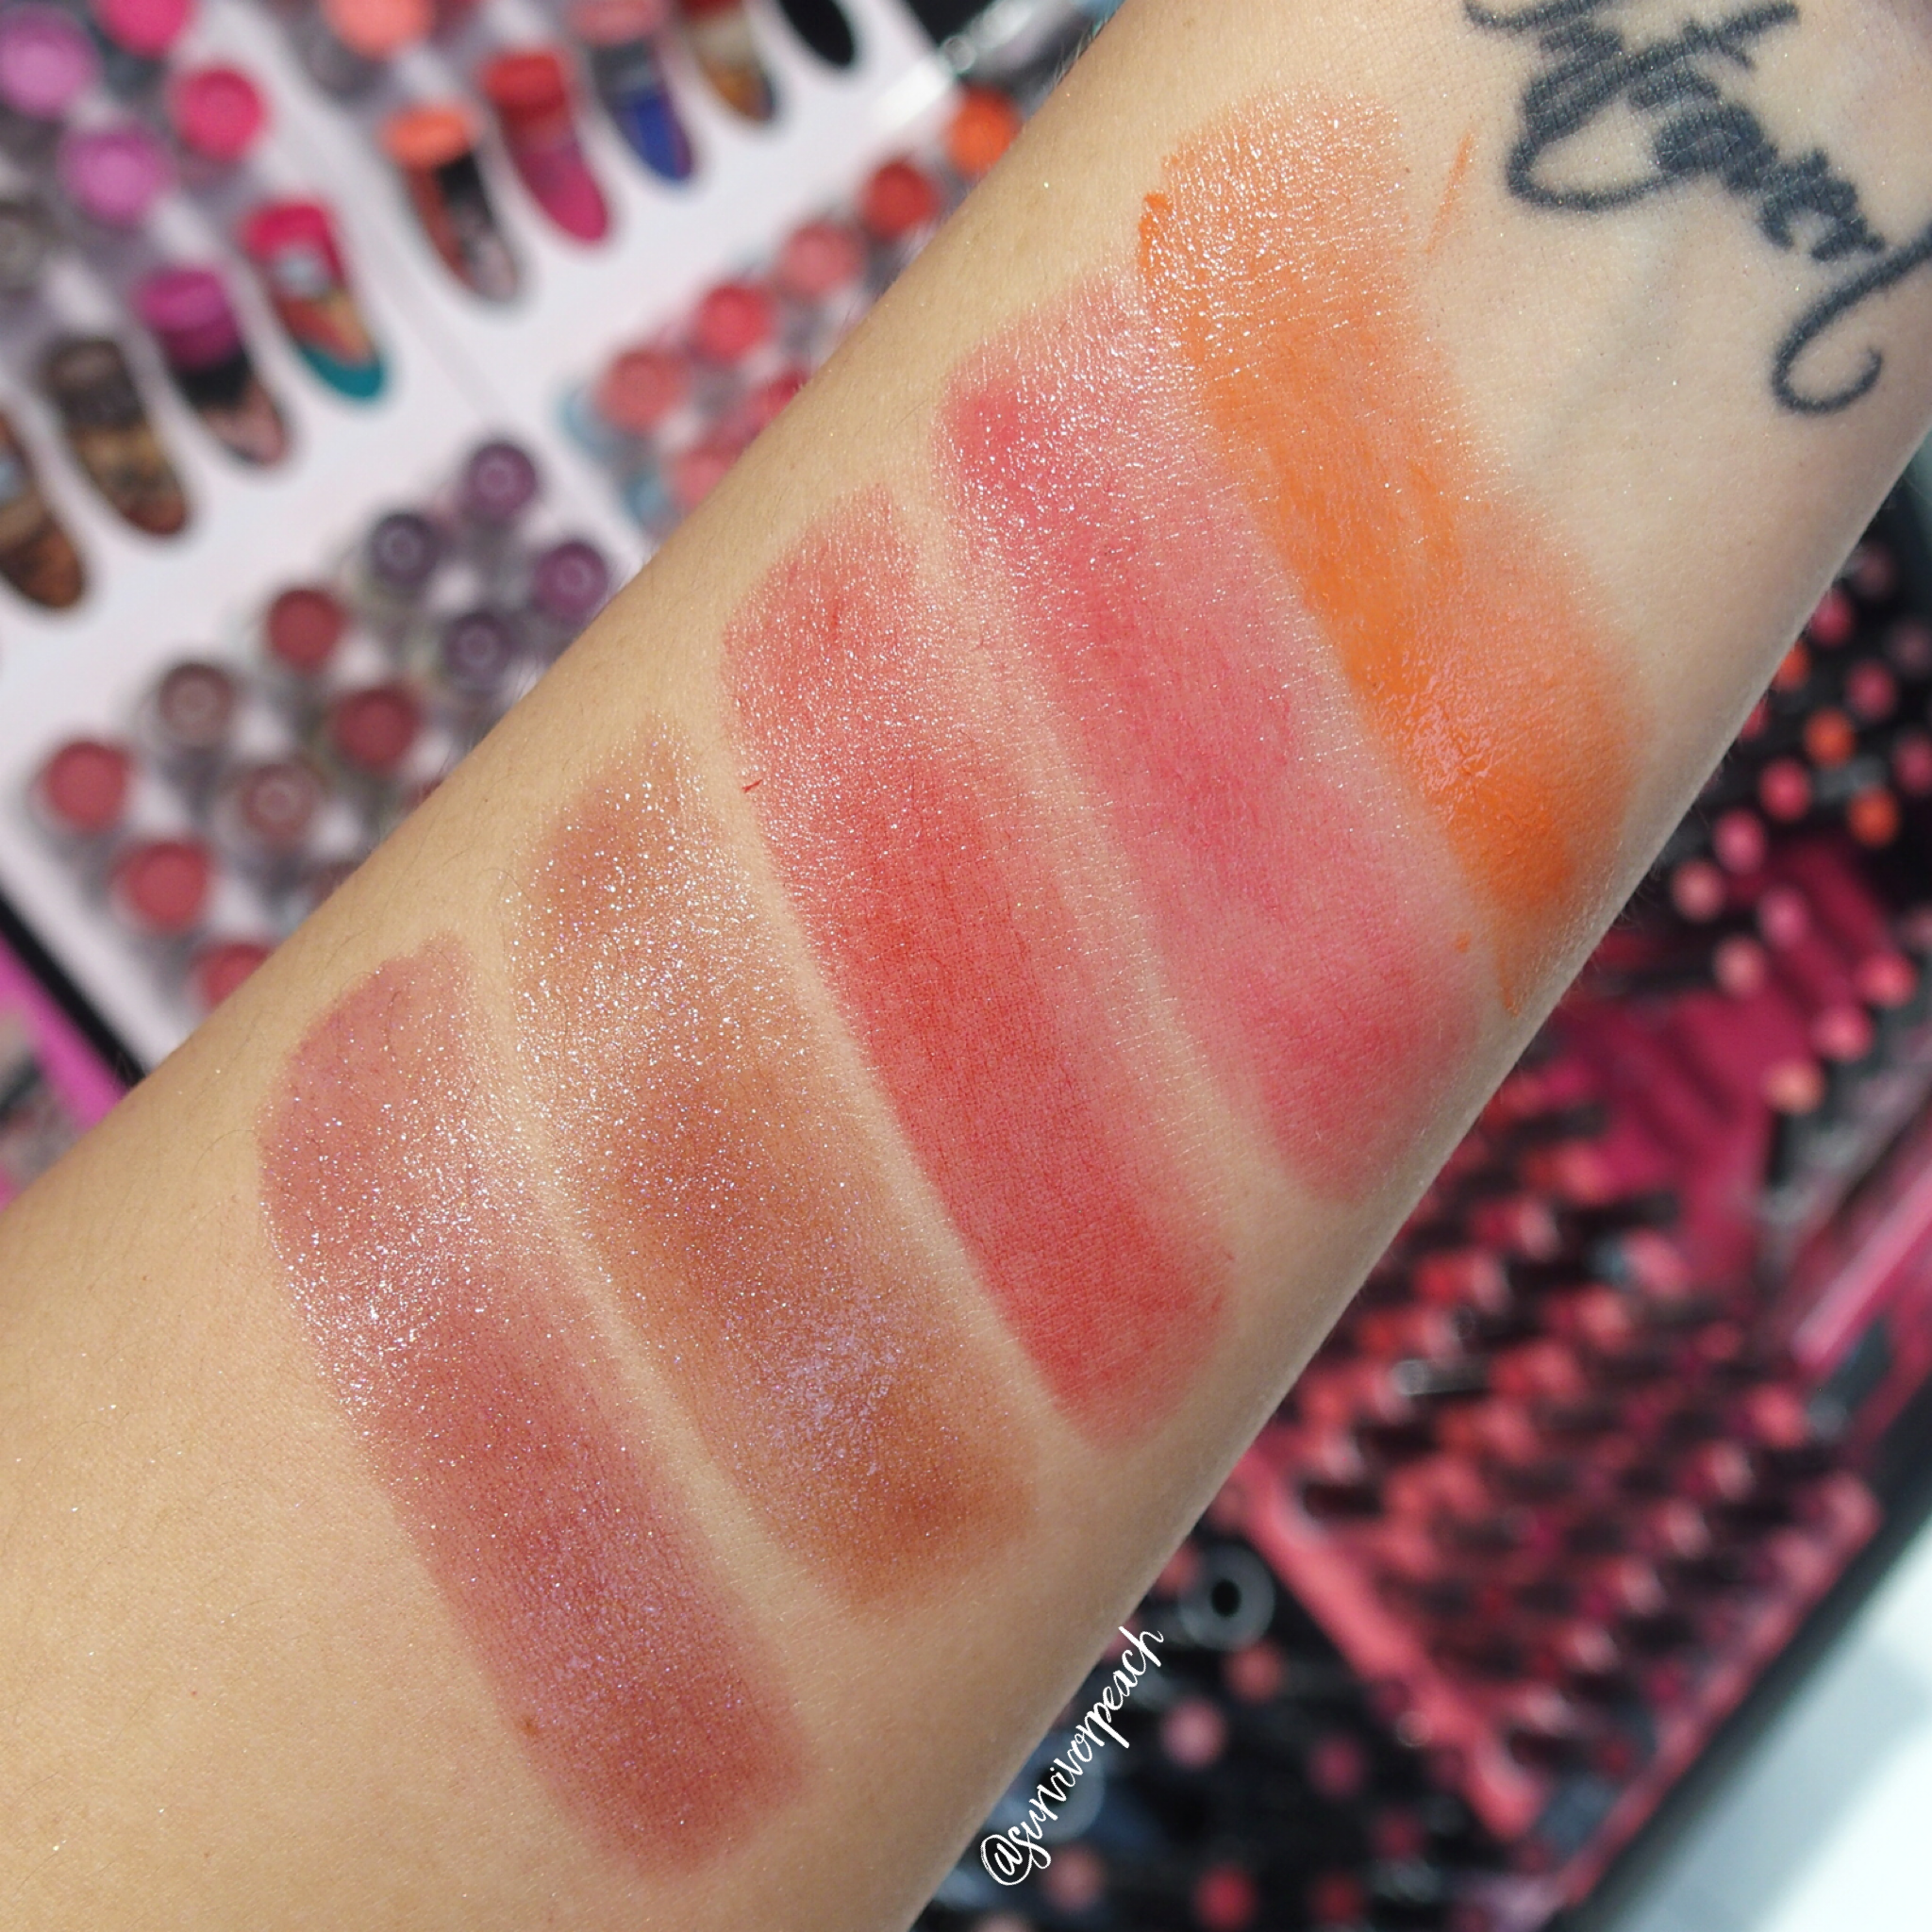 Swatches of the Sephora Collection Rouge Shine: N29, N30, N34, N036, N42